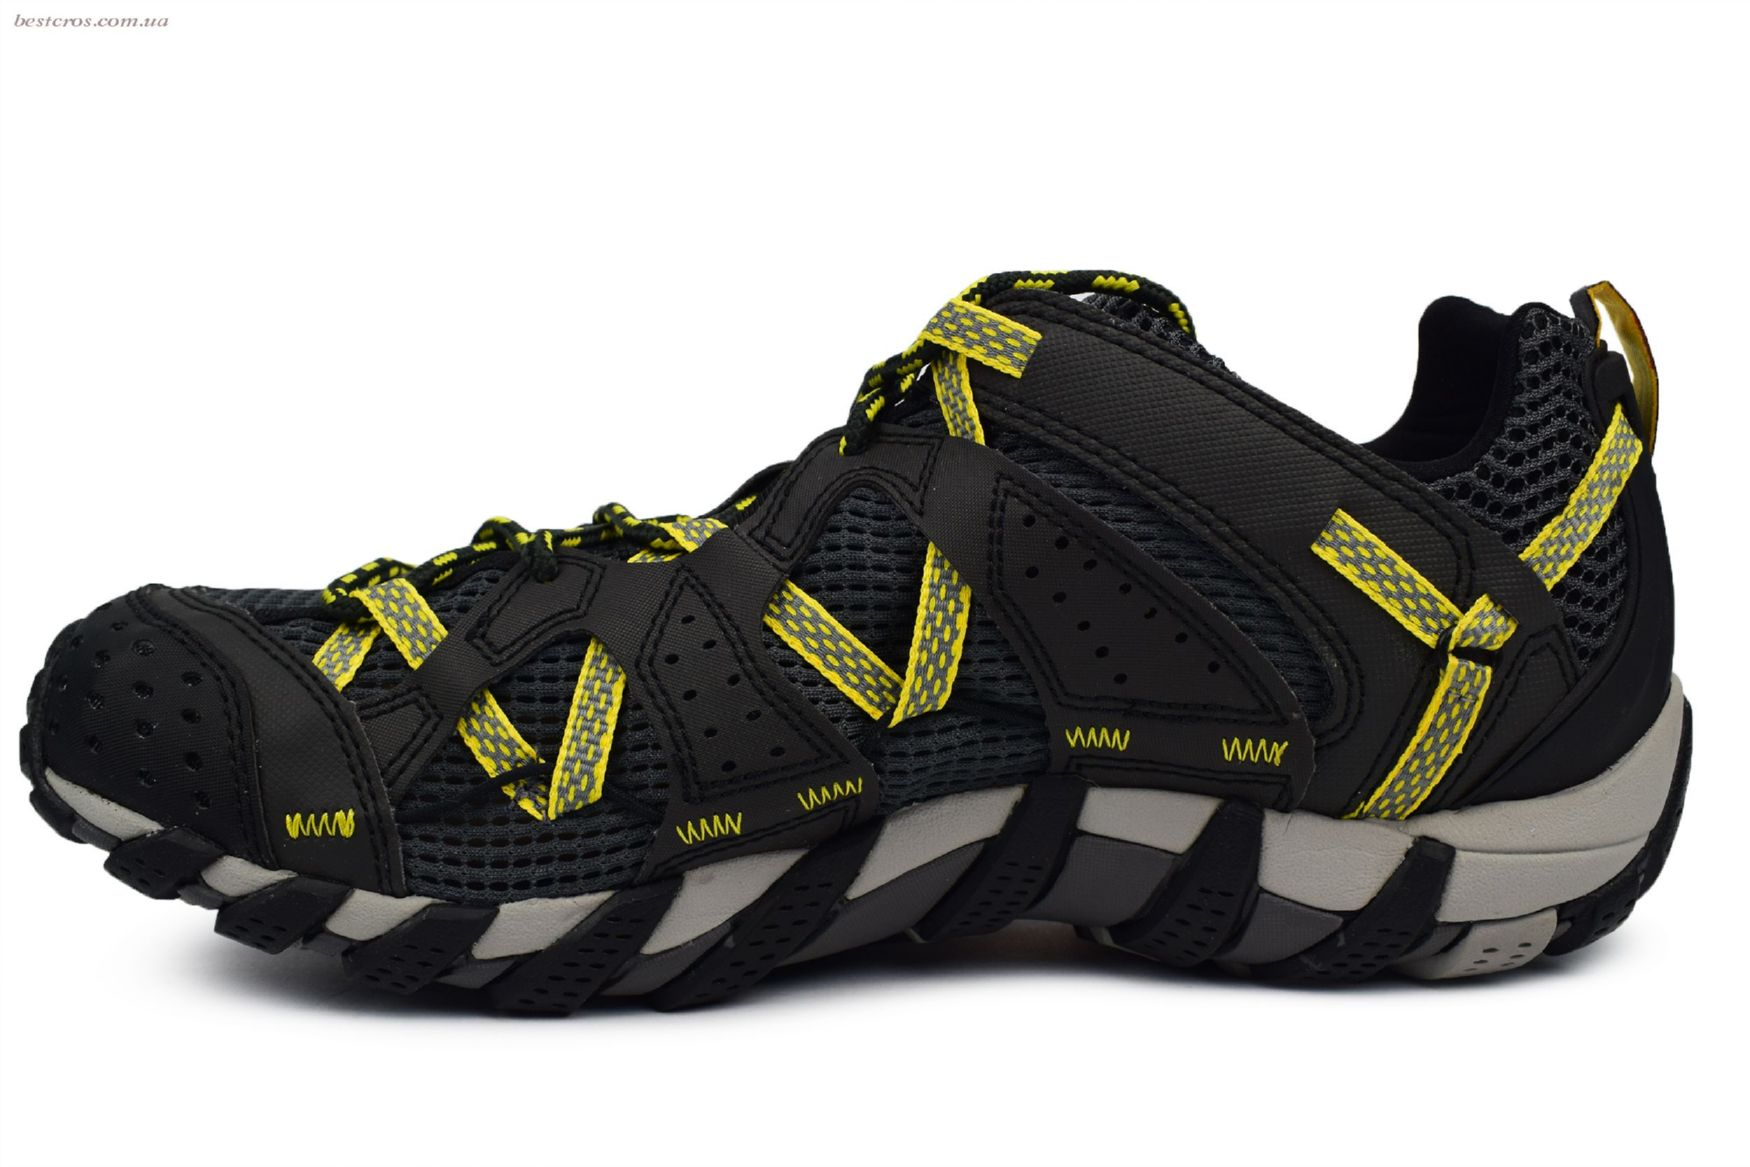 Мужские кроссовки Merrell Waterpro Maipo Black/Yellow - фото №2